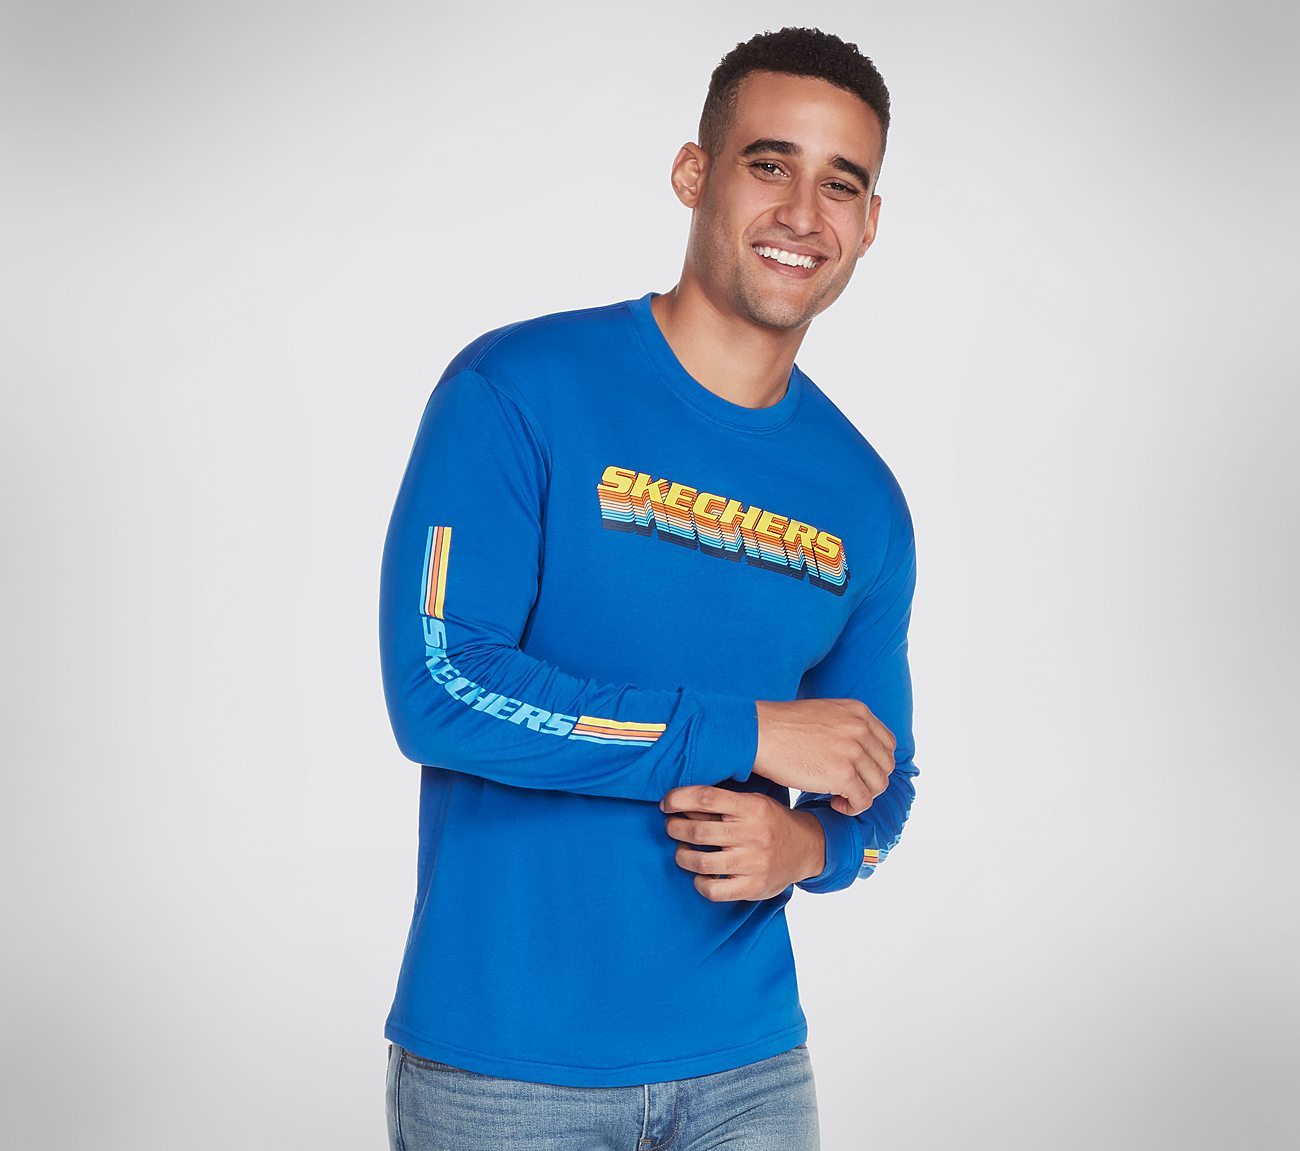 Skechers Apparel Throwback Long Sleeve Tee Shirt